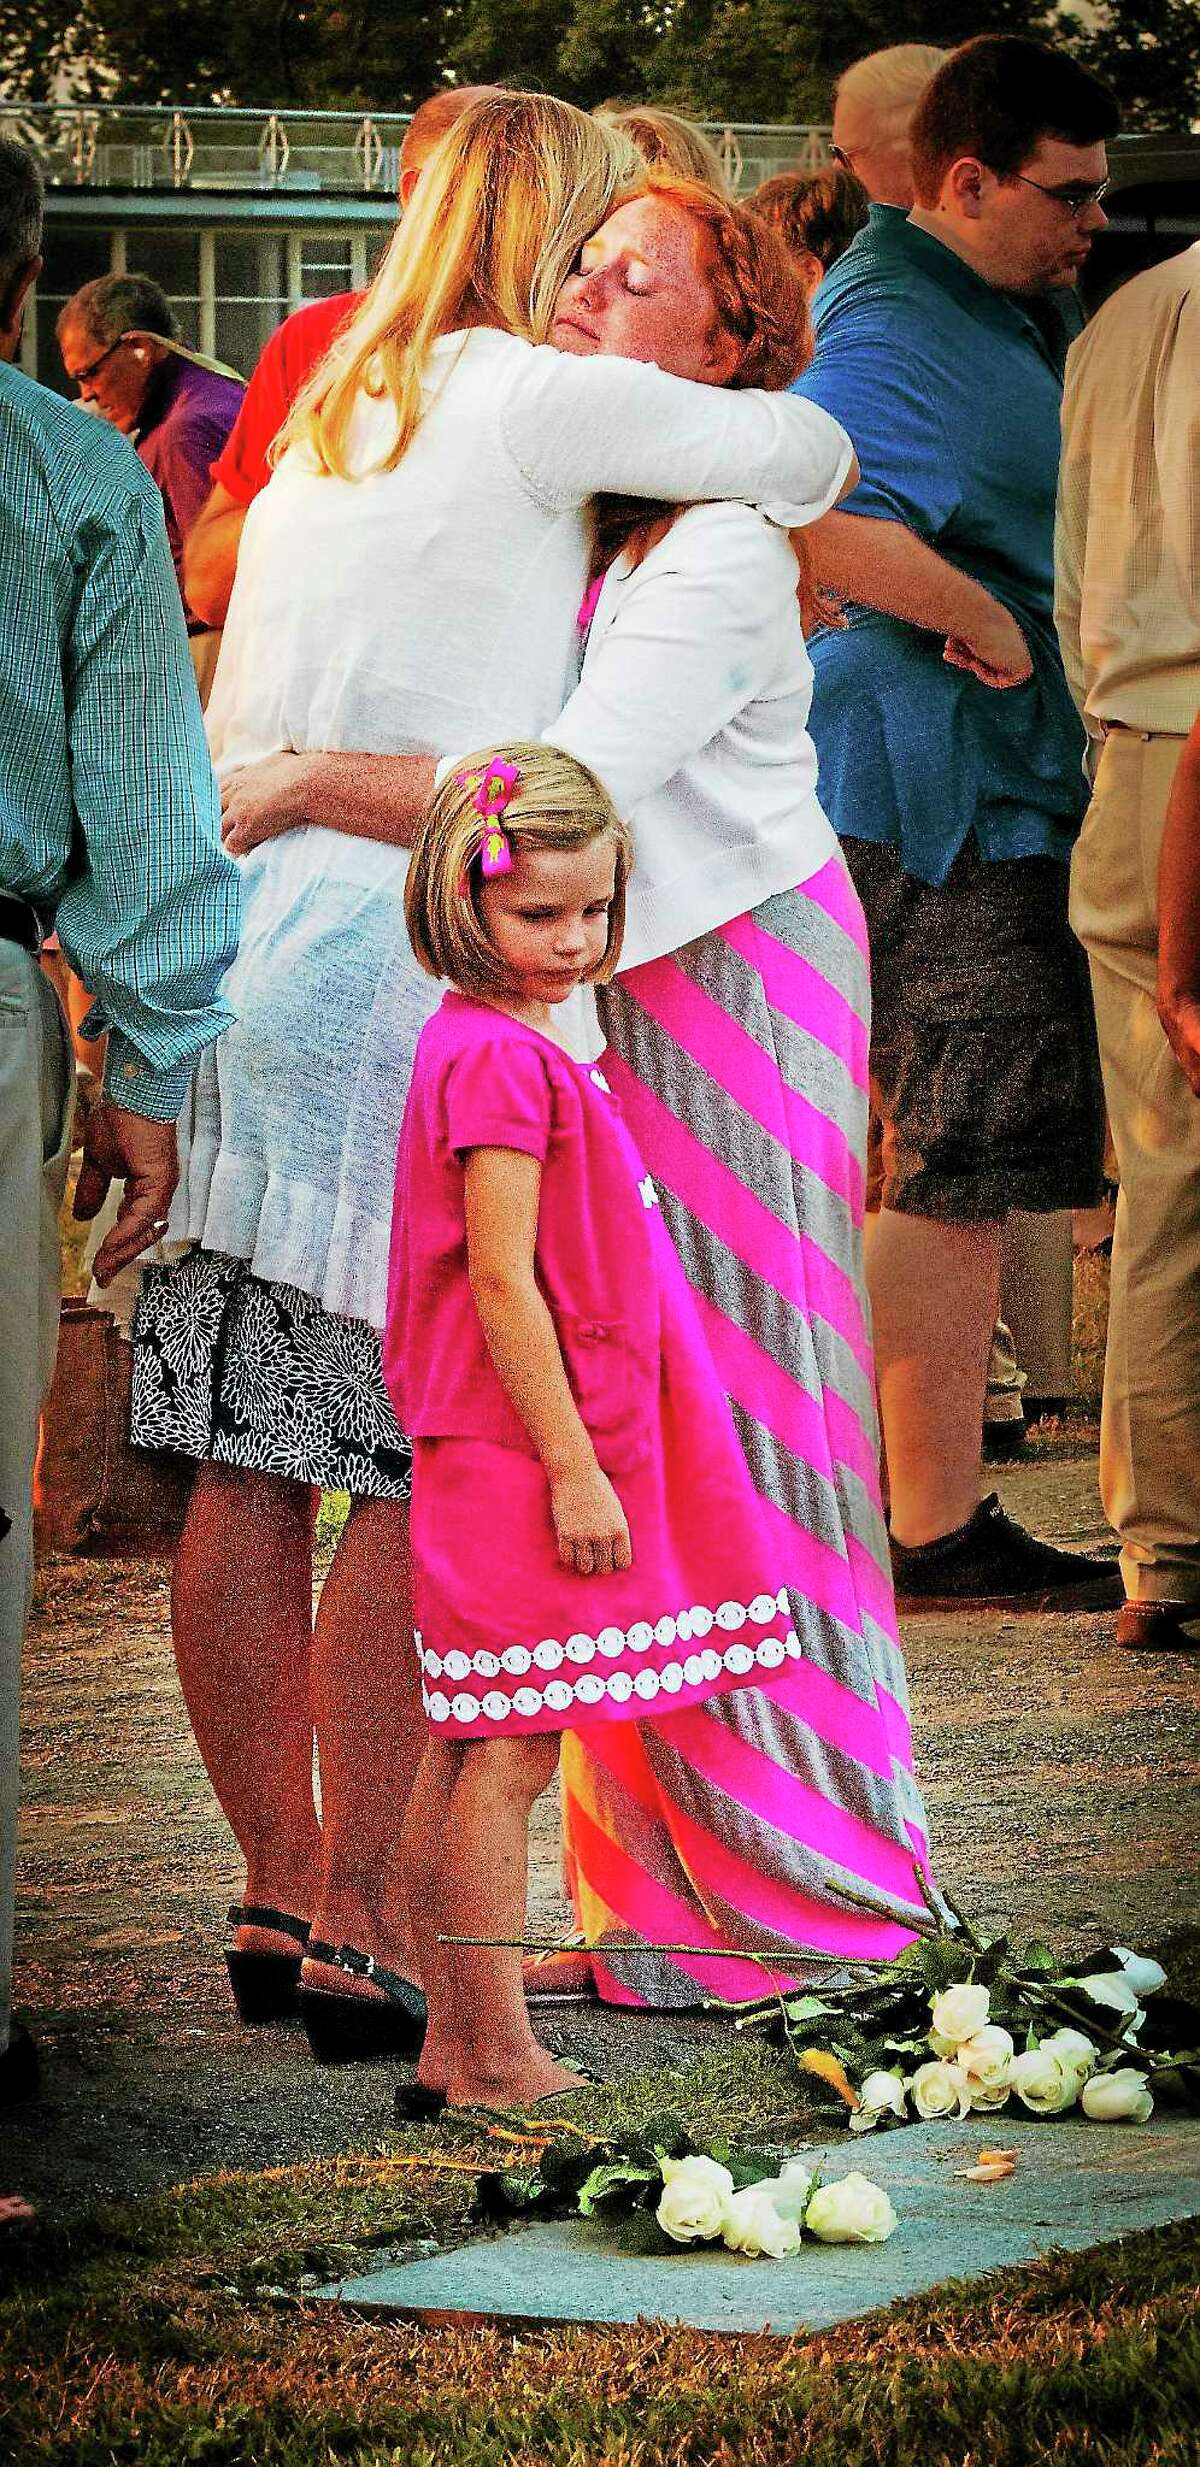 (Melanie Stengel — New Haven Register ) Emma Hunt, 13, of Essex hugs her Aunt Deborah Woodward, of Fairfieldw during the annual 9/11 memorial service in Westport. Hunt's father was killed in the attack on the World Trade Center. Looking at marker and flowere is Molly Woodward,5.